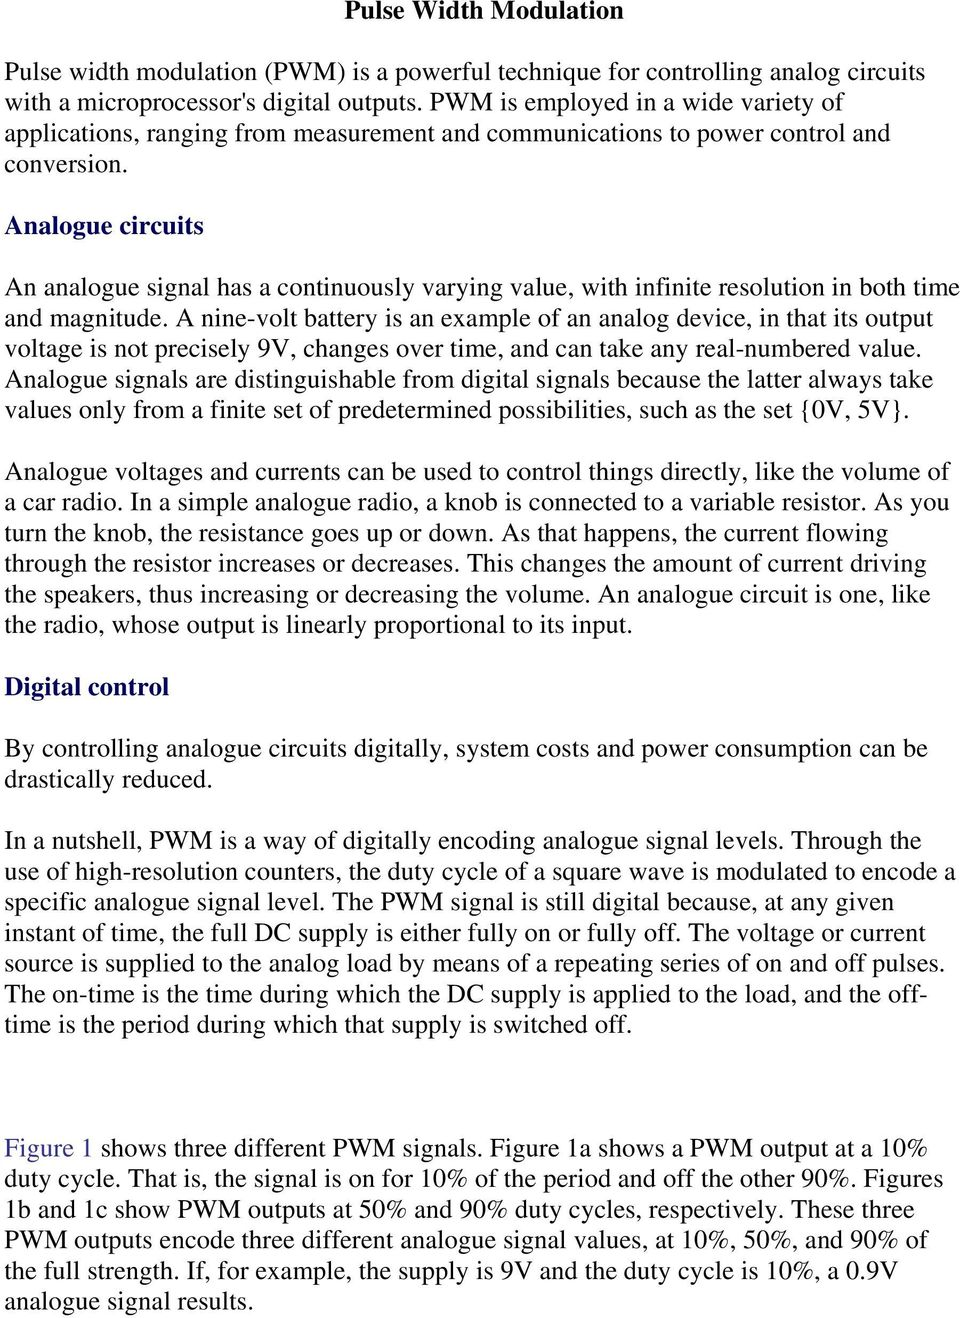 Pulse Width Modulation Pdf Pwm For Dc Motor Speed And Led Brightness Analogue Circuits An Signal Has A Continuously Varying Value With Infinite Resolution In Both